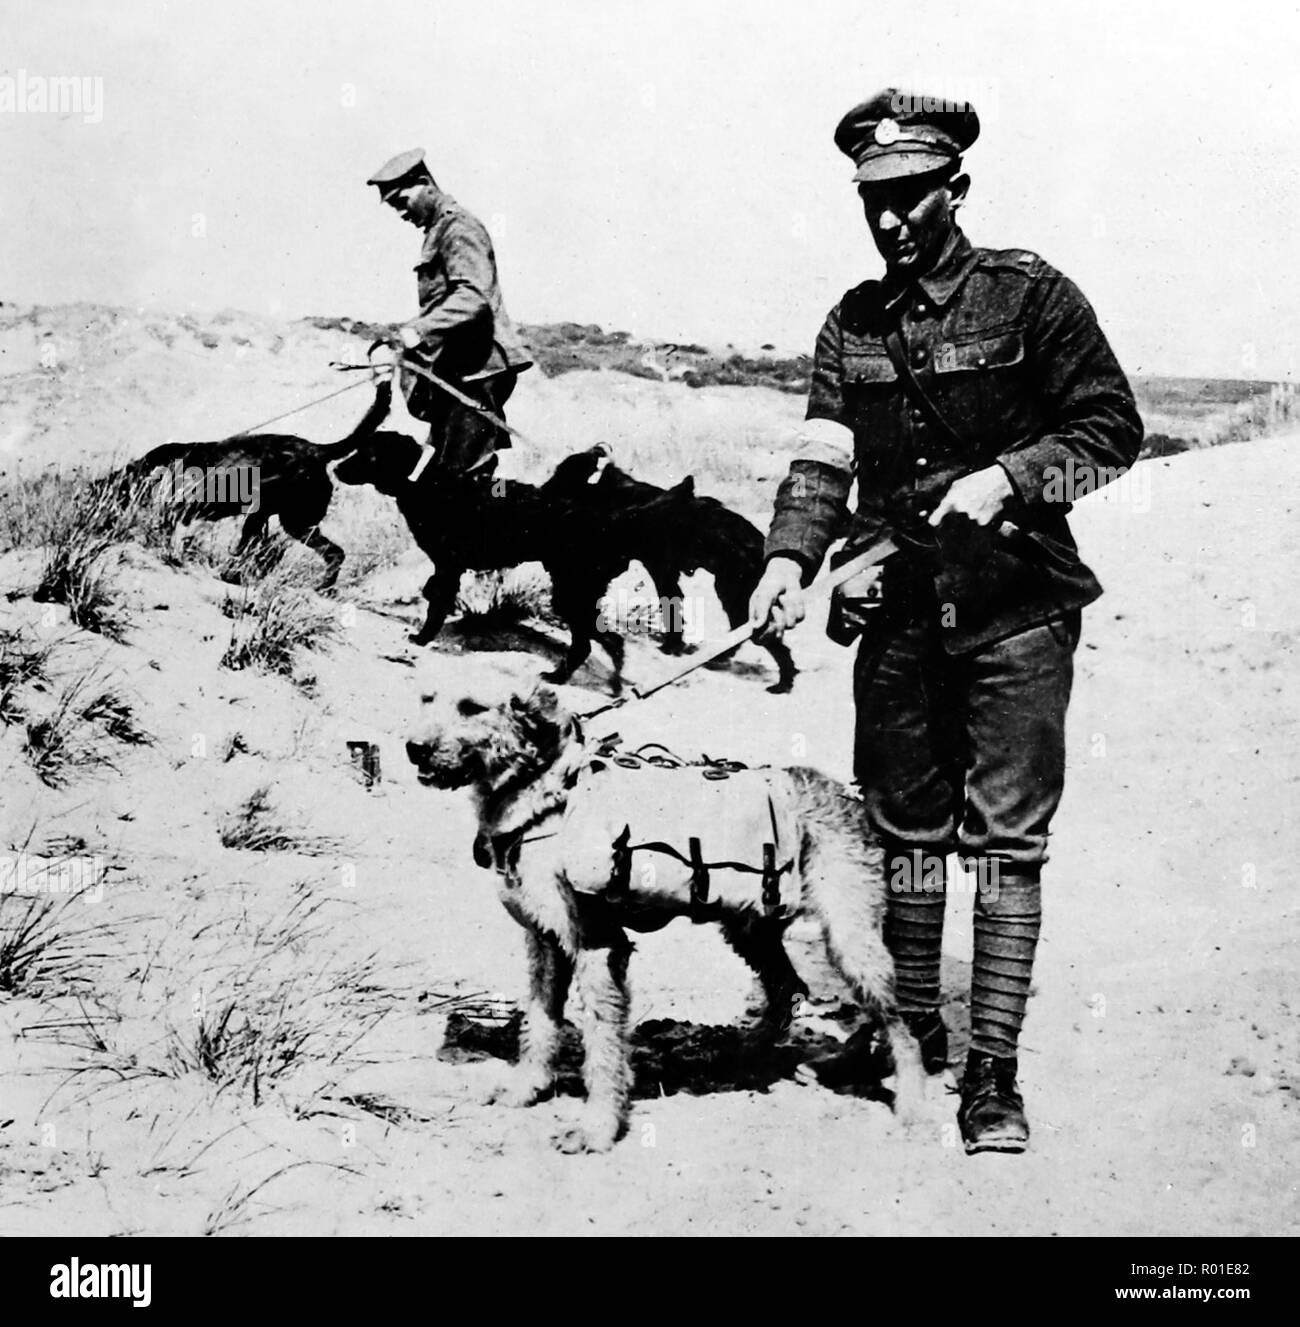 Dogs in no-mans-land with first aid supplies for wounded soldiers during the First World War - Stock Image